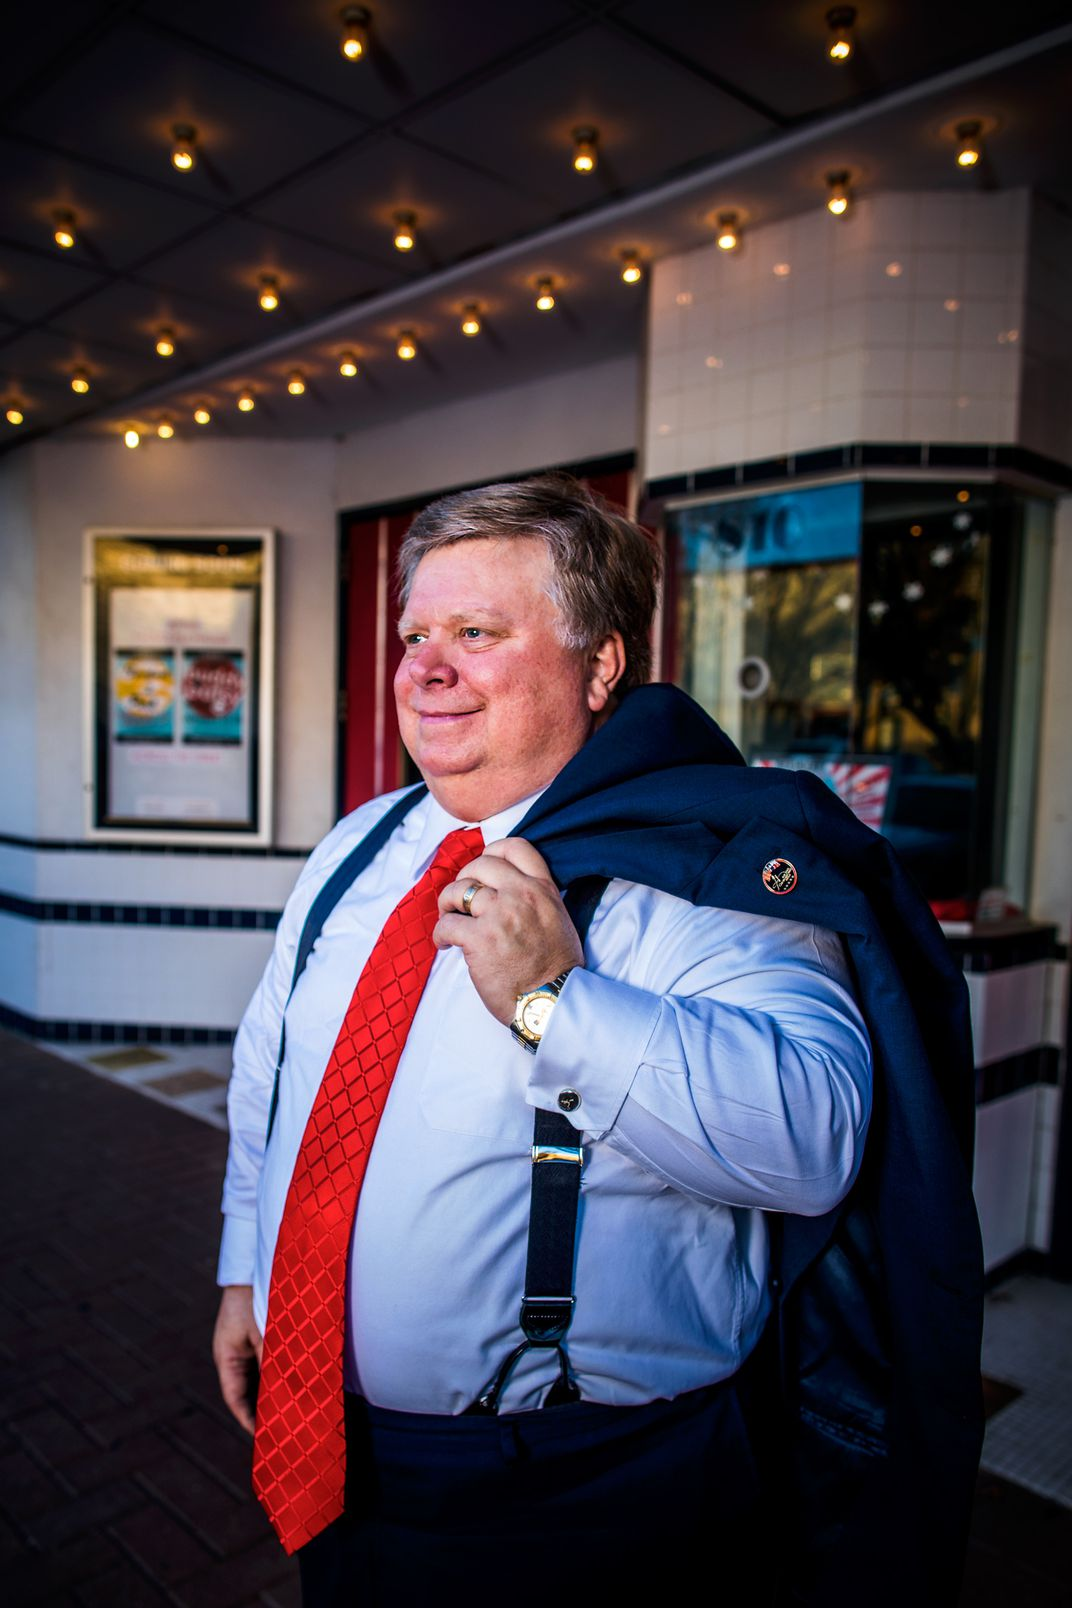 Mayor Dale Ross, in front of the historic Georgetown Palace Theater, has become an energy celebrity, appearing in An Inconvenient Sequel. Image by Drew Anthony Smith.